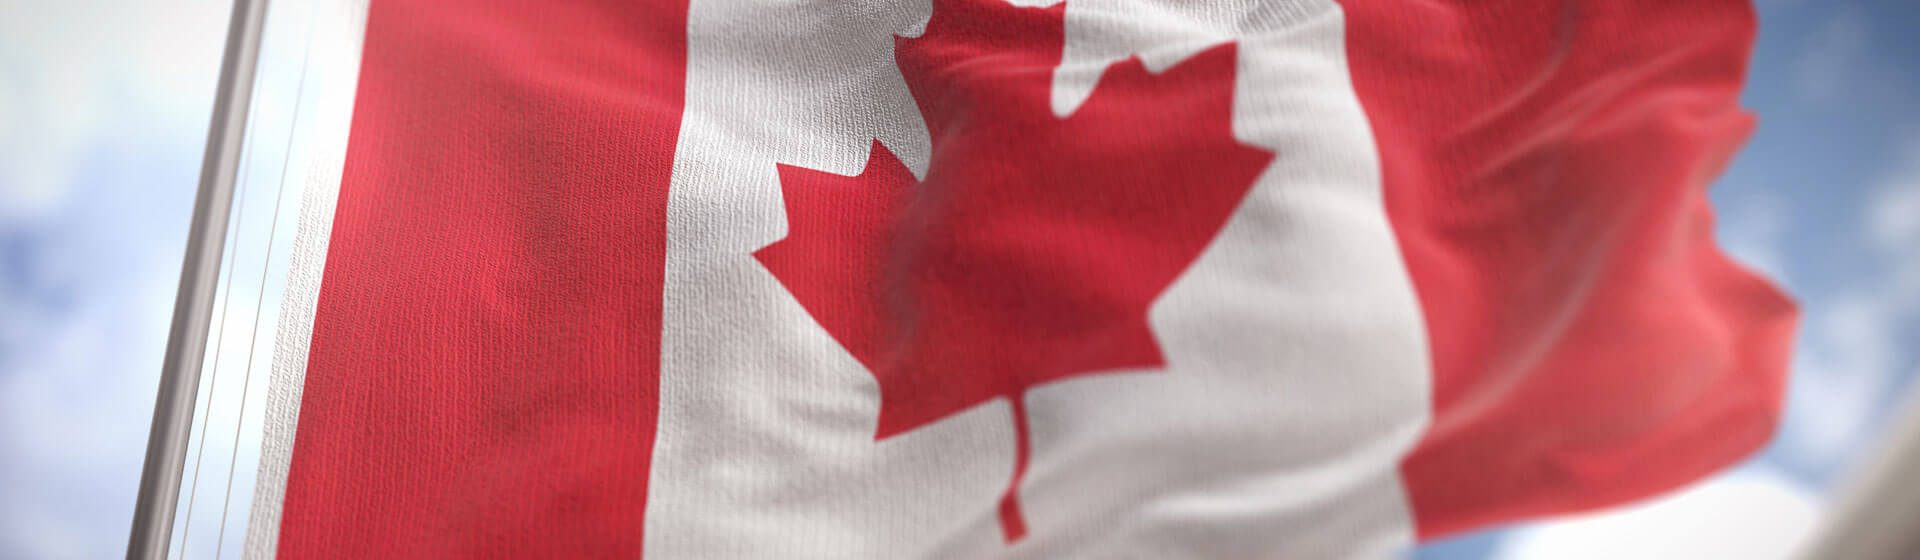 Canada May Be Getting A Privacy Law Update